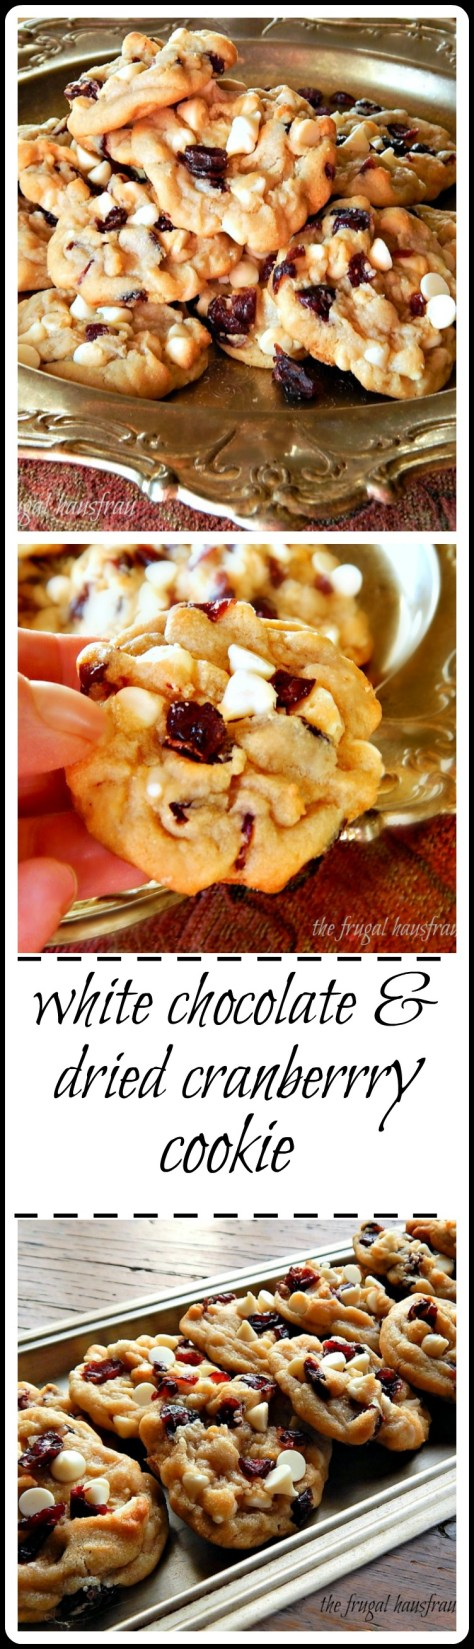 White Chocolate & Dried Cranberry Cookies - truly exceptional!